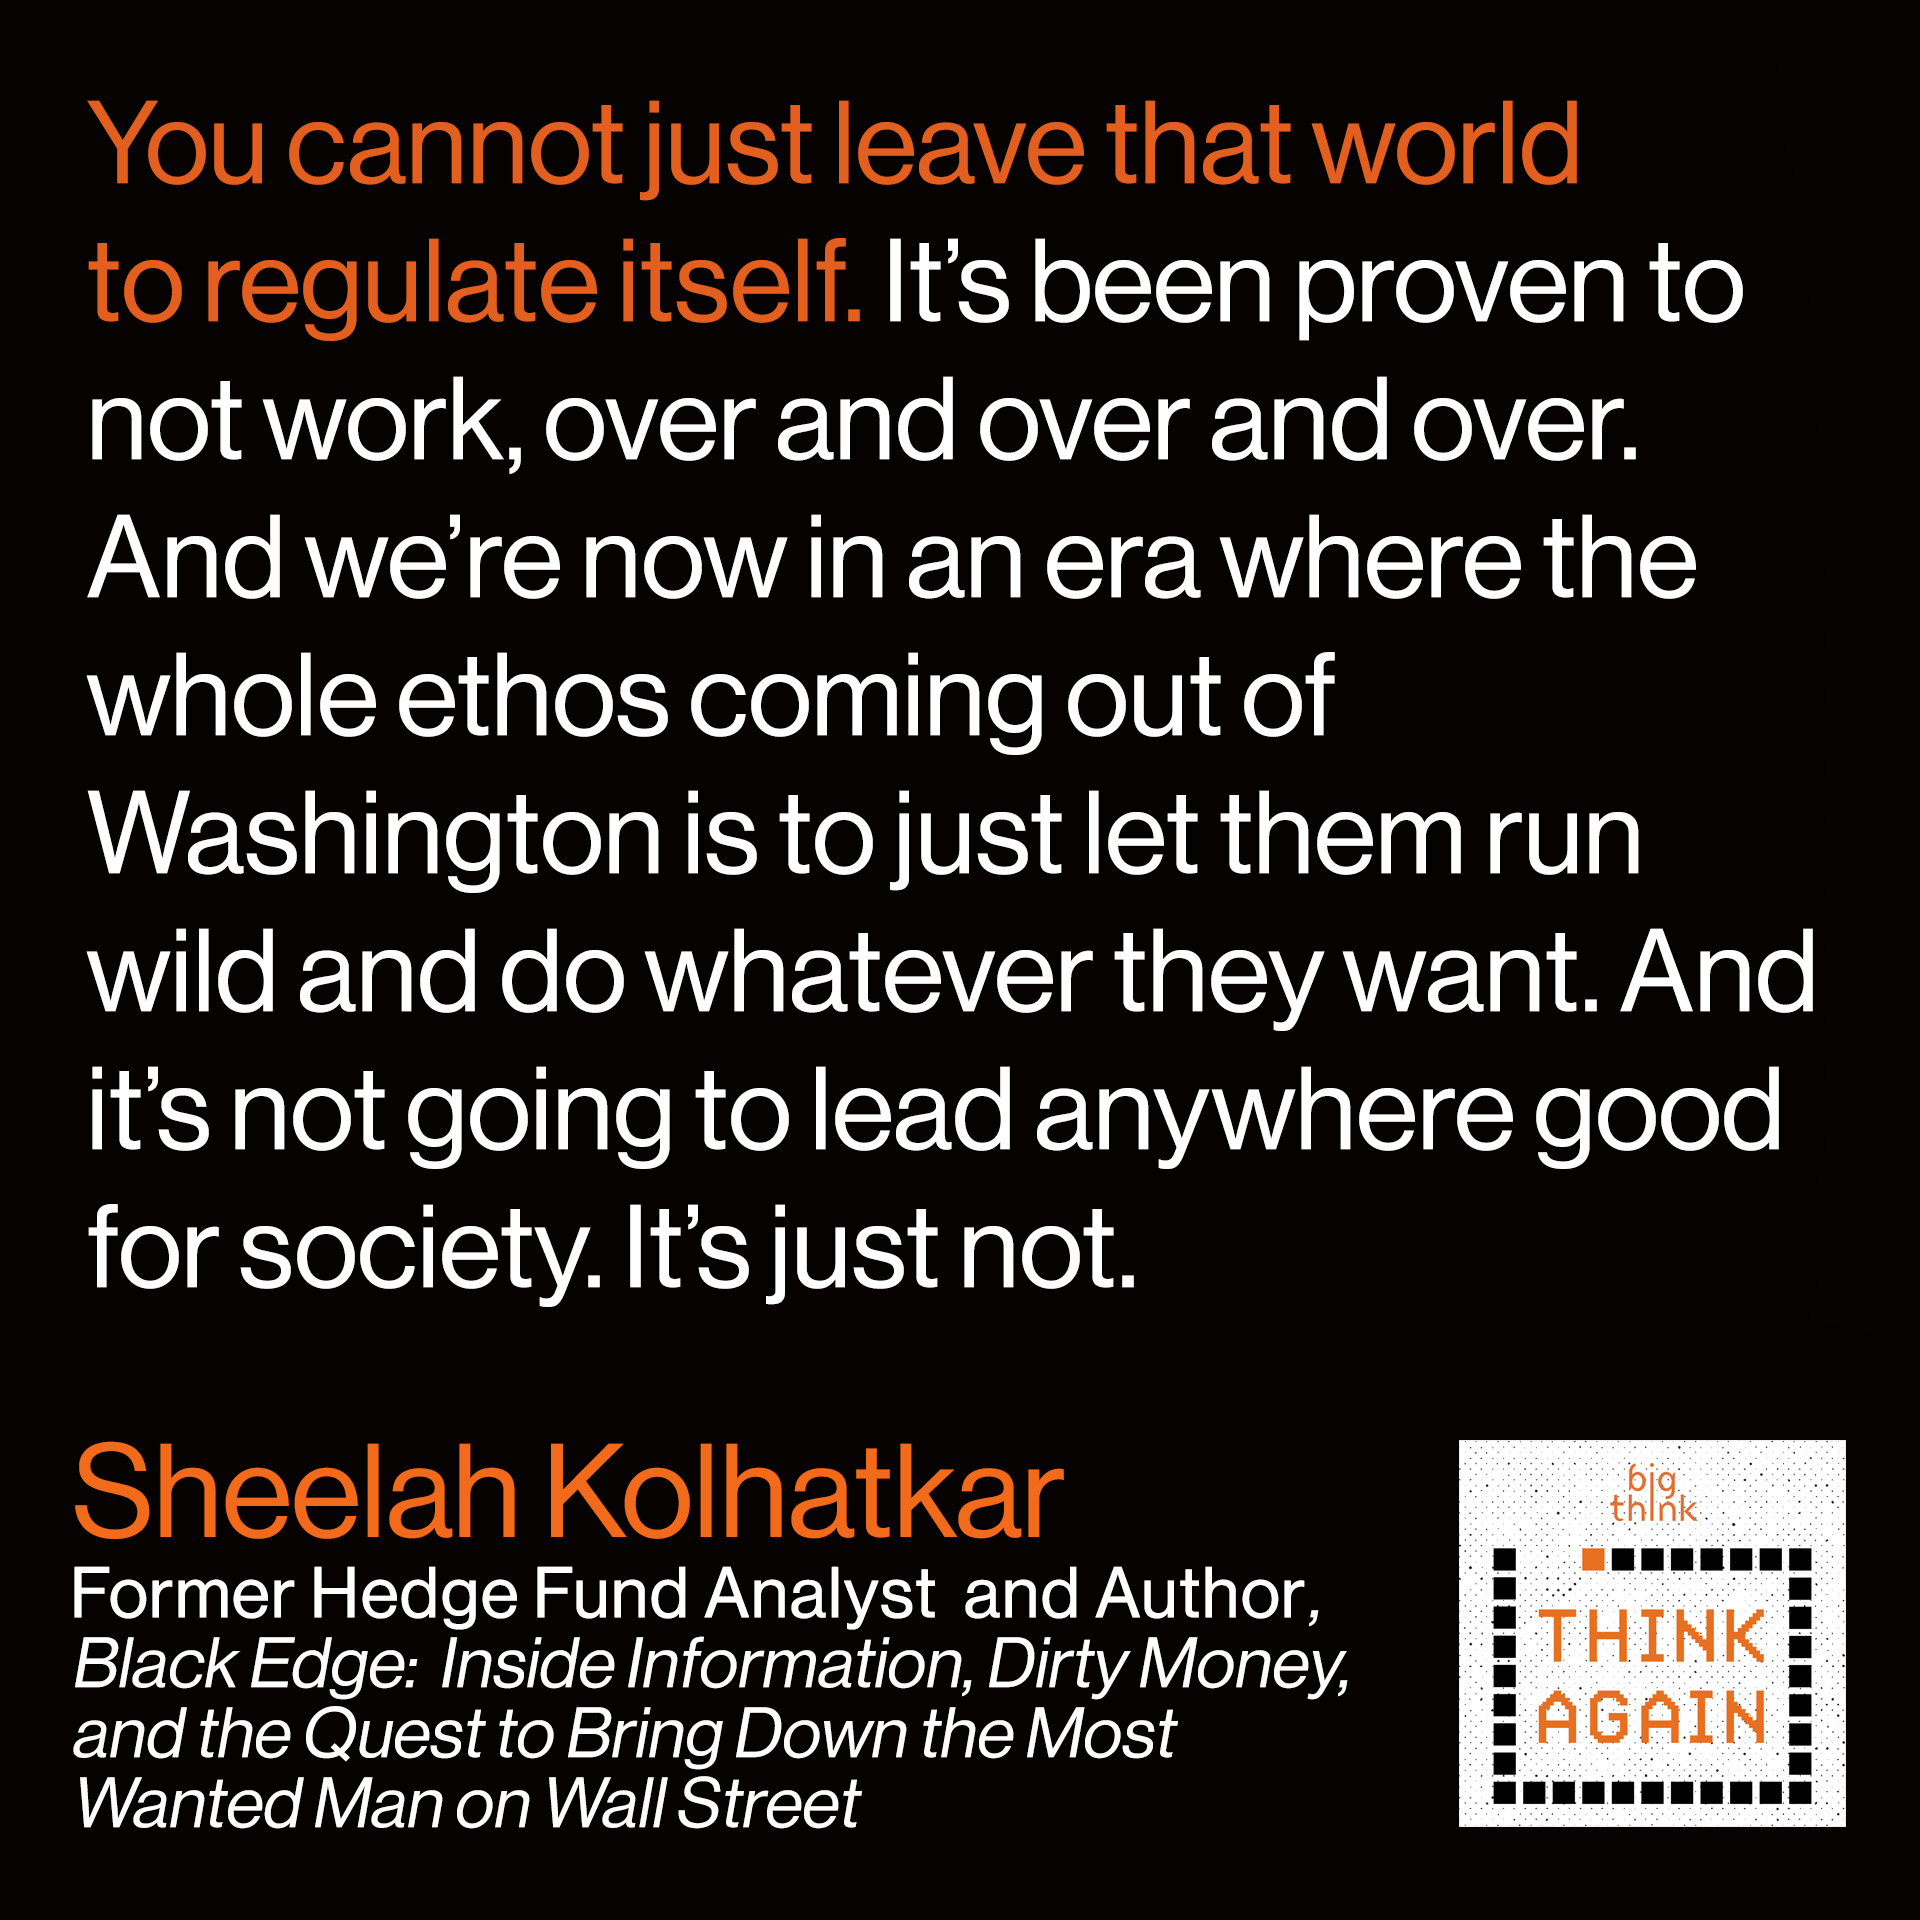 Sheelah Kolhatkar quote: You cannot just leave that world to regulate itself.  It's been proven to not work, over and over and over to not work.  And we're now in an era where the whole ethos coming out of Washington is  To just let them run wild and do whatever they want.  And it's not going to lead anywhere good for society. It's just not.